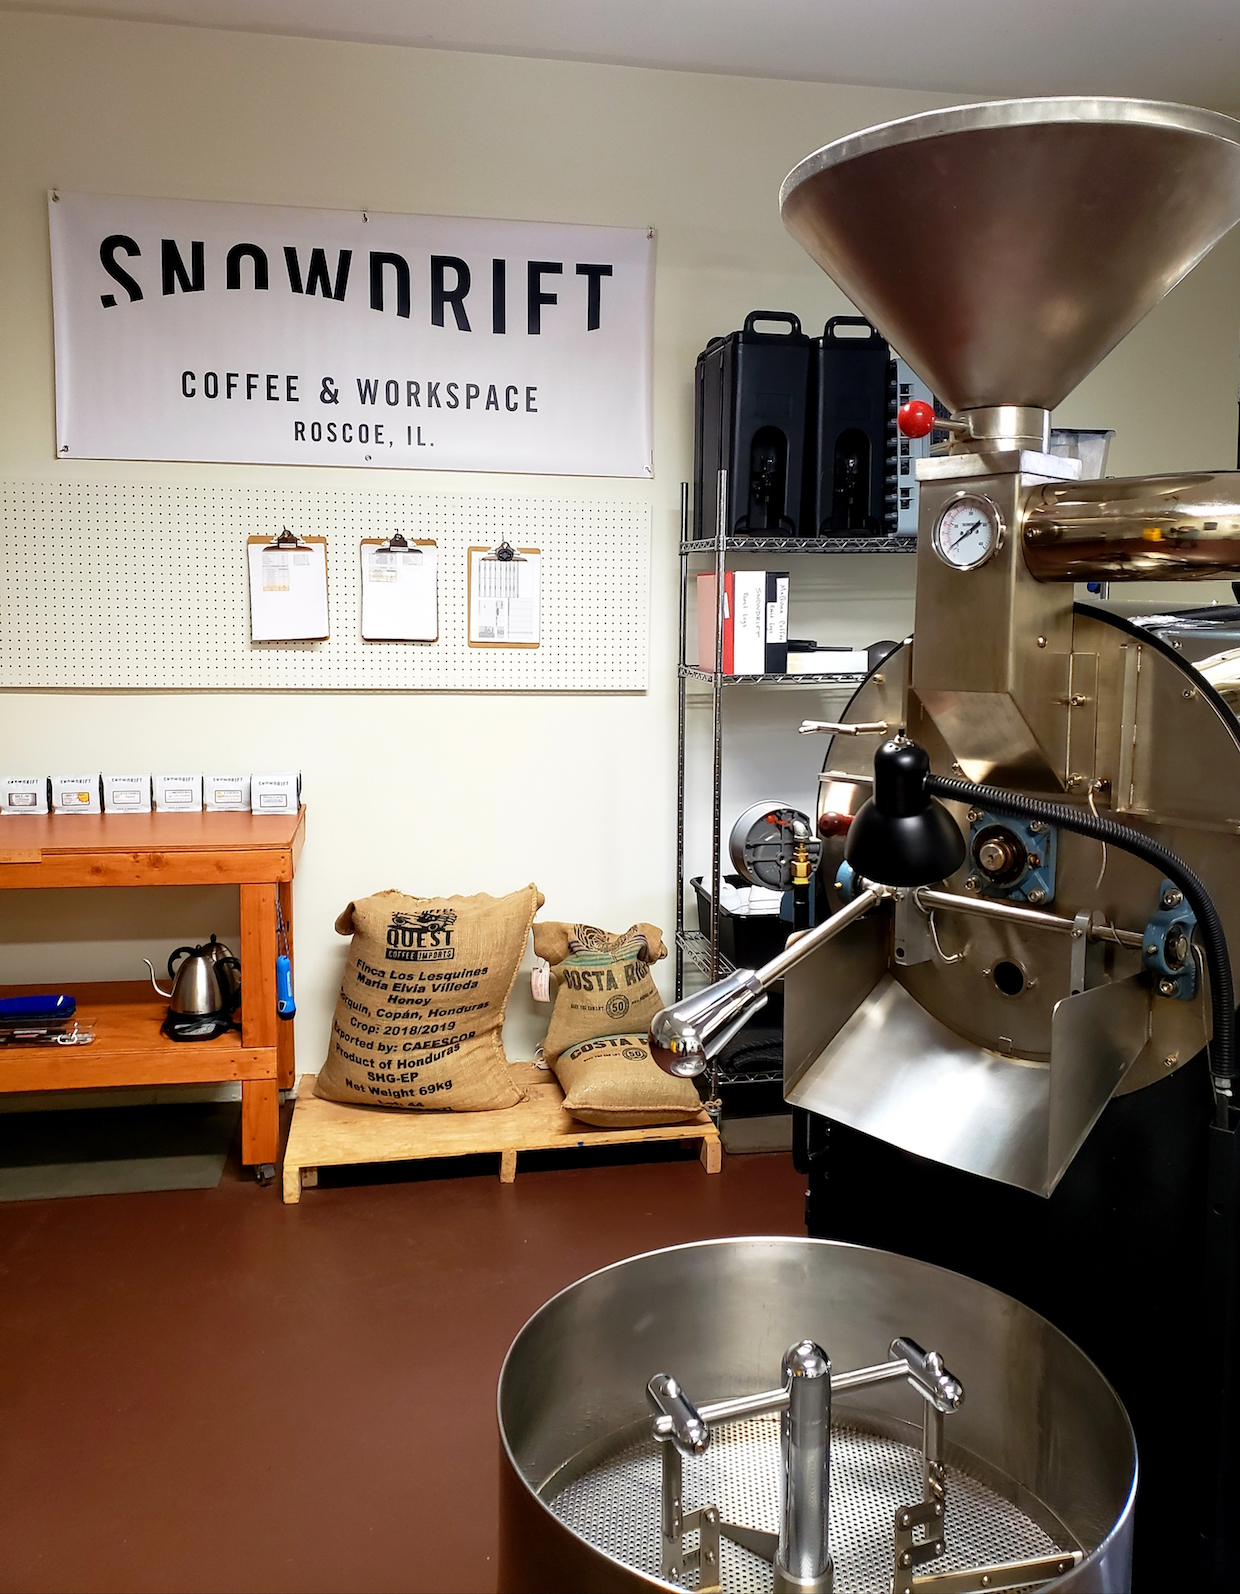 Snowdrift Coffee